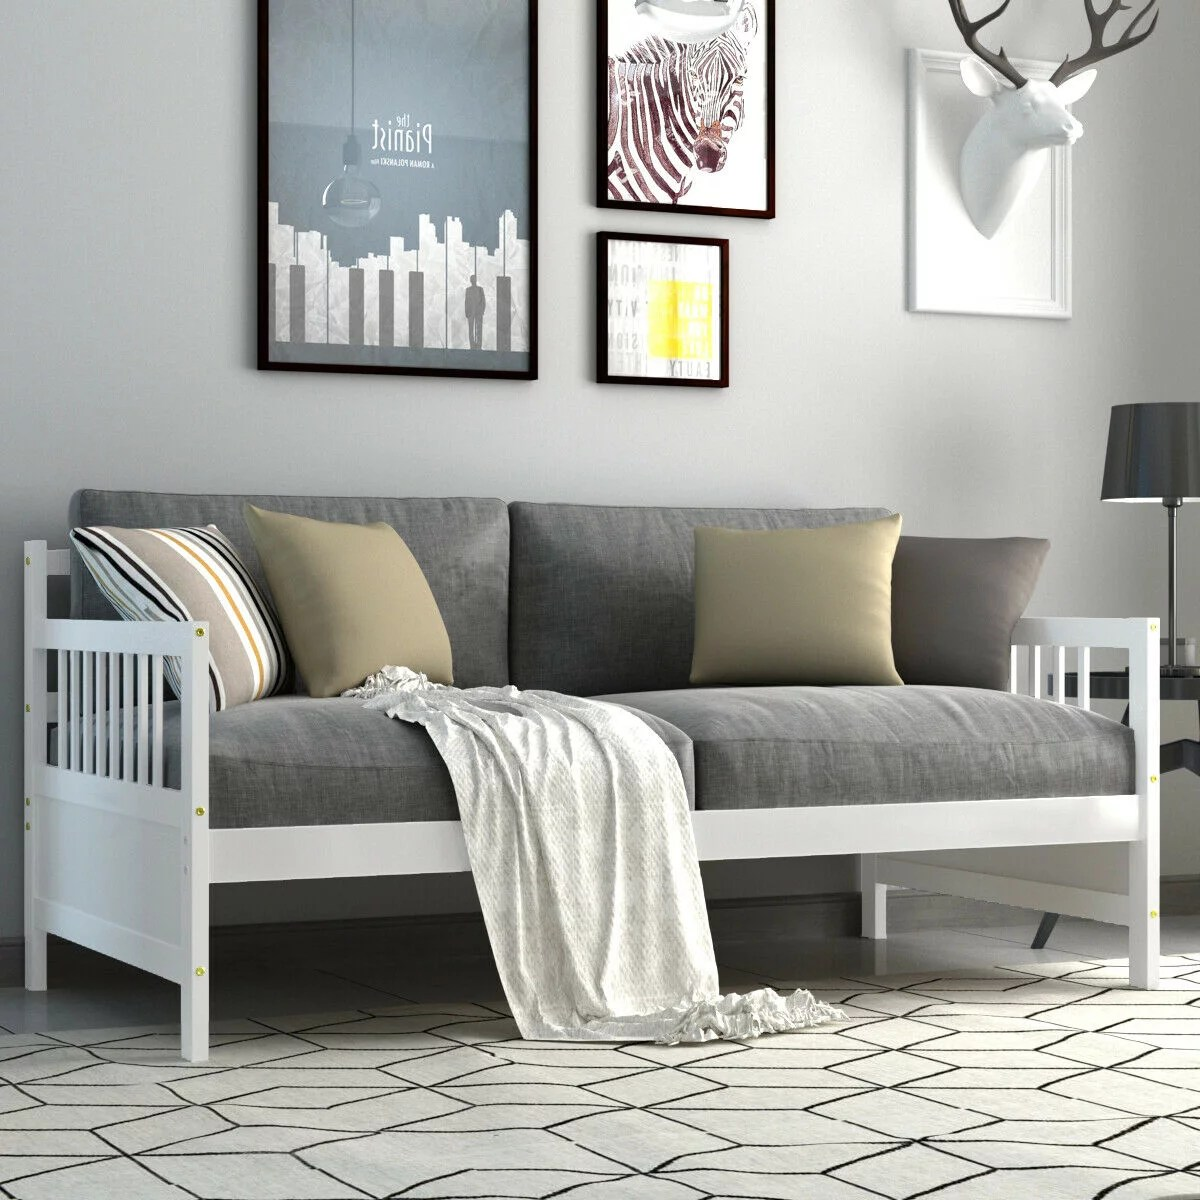 gymax twin size wooden slats daybed bed sofa support platform sturdy w rails espresso white